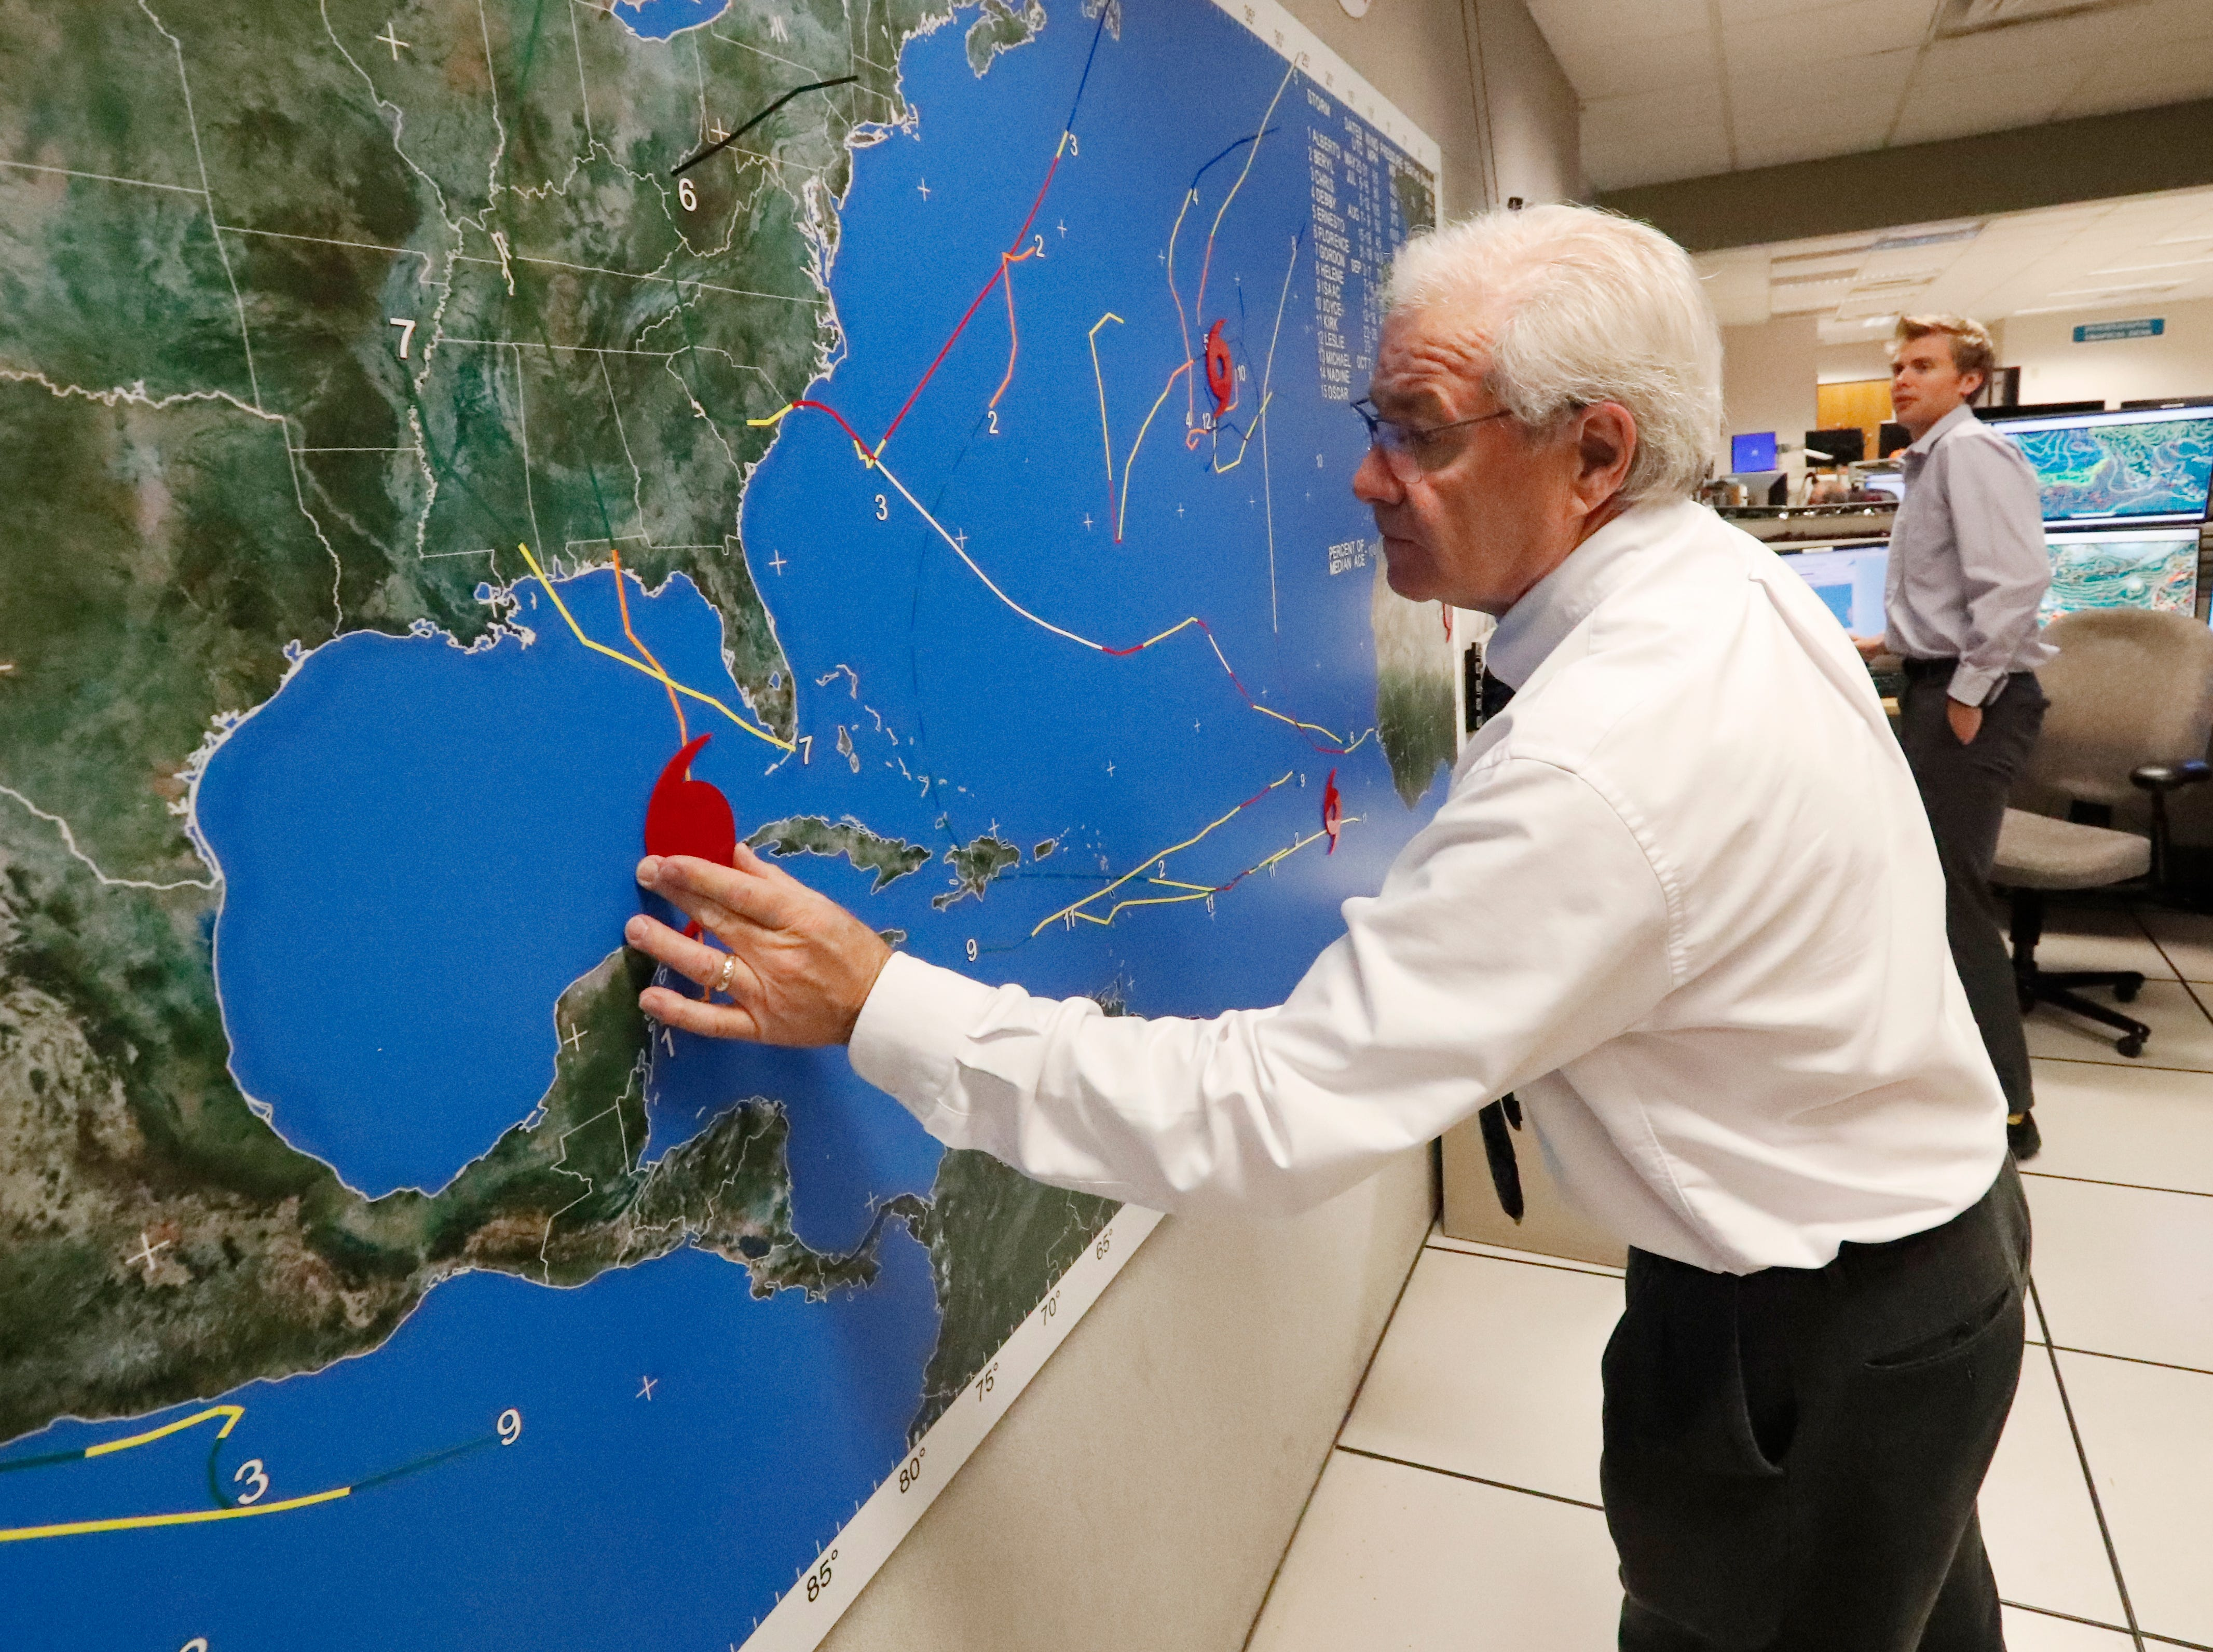 National Oceanic and Atmospheric Administration public affairs officer Dennis Feltgen updates the progress of Hurricane Michael on a large map, Tuesday, Oct. 9, 2018, at the Hurricane Center in Miami.